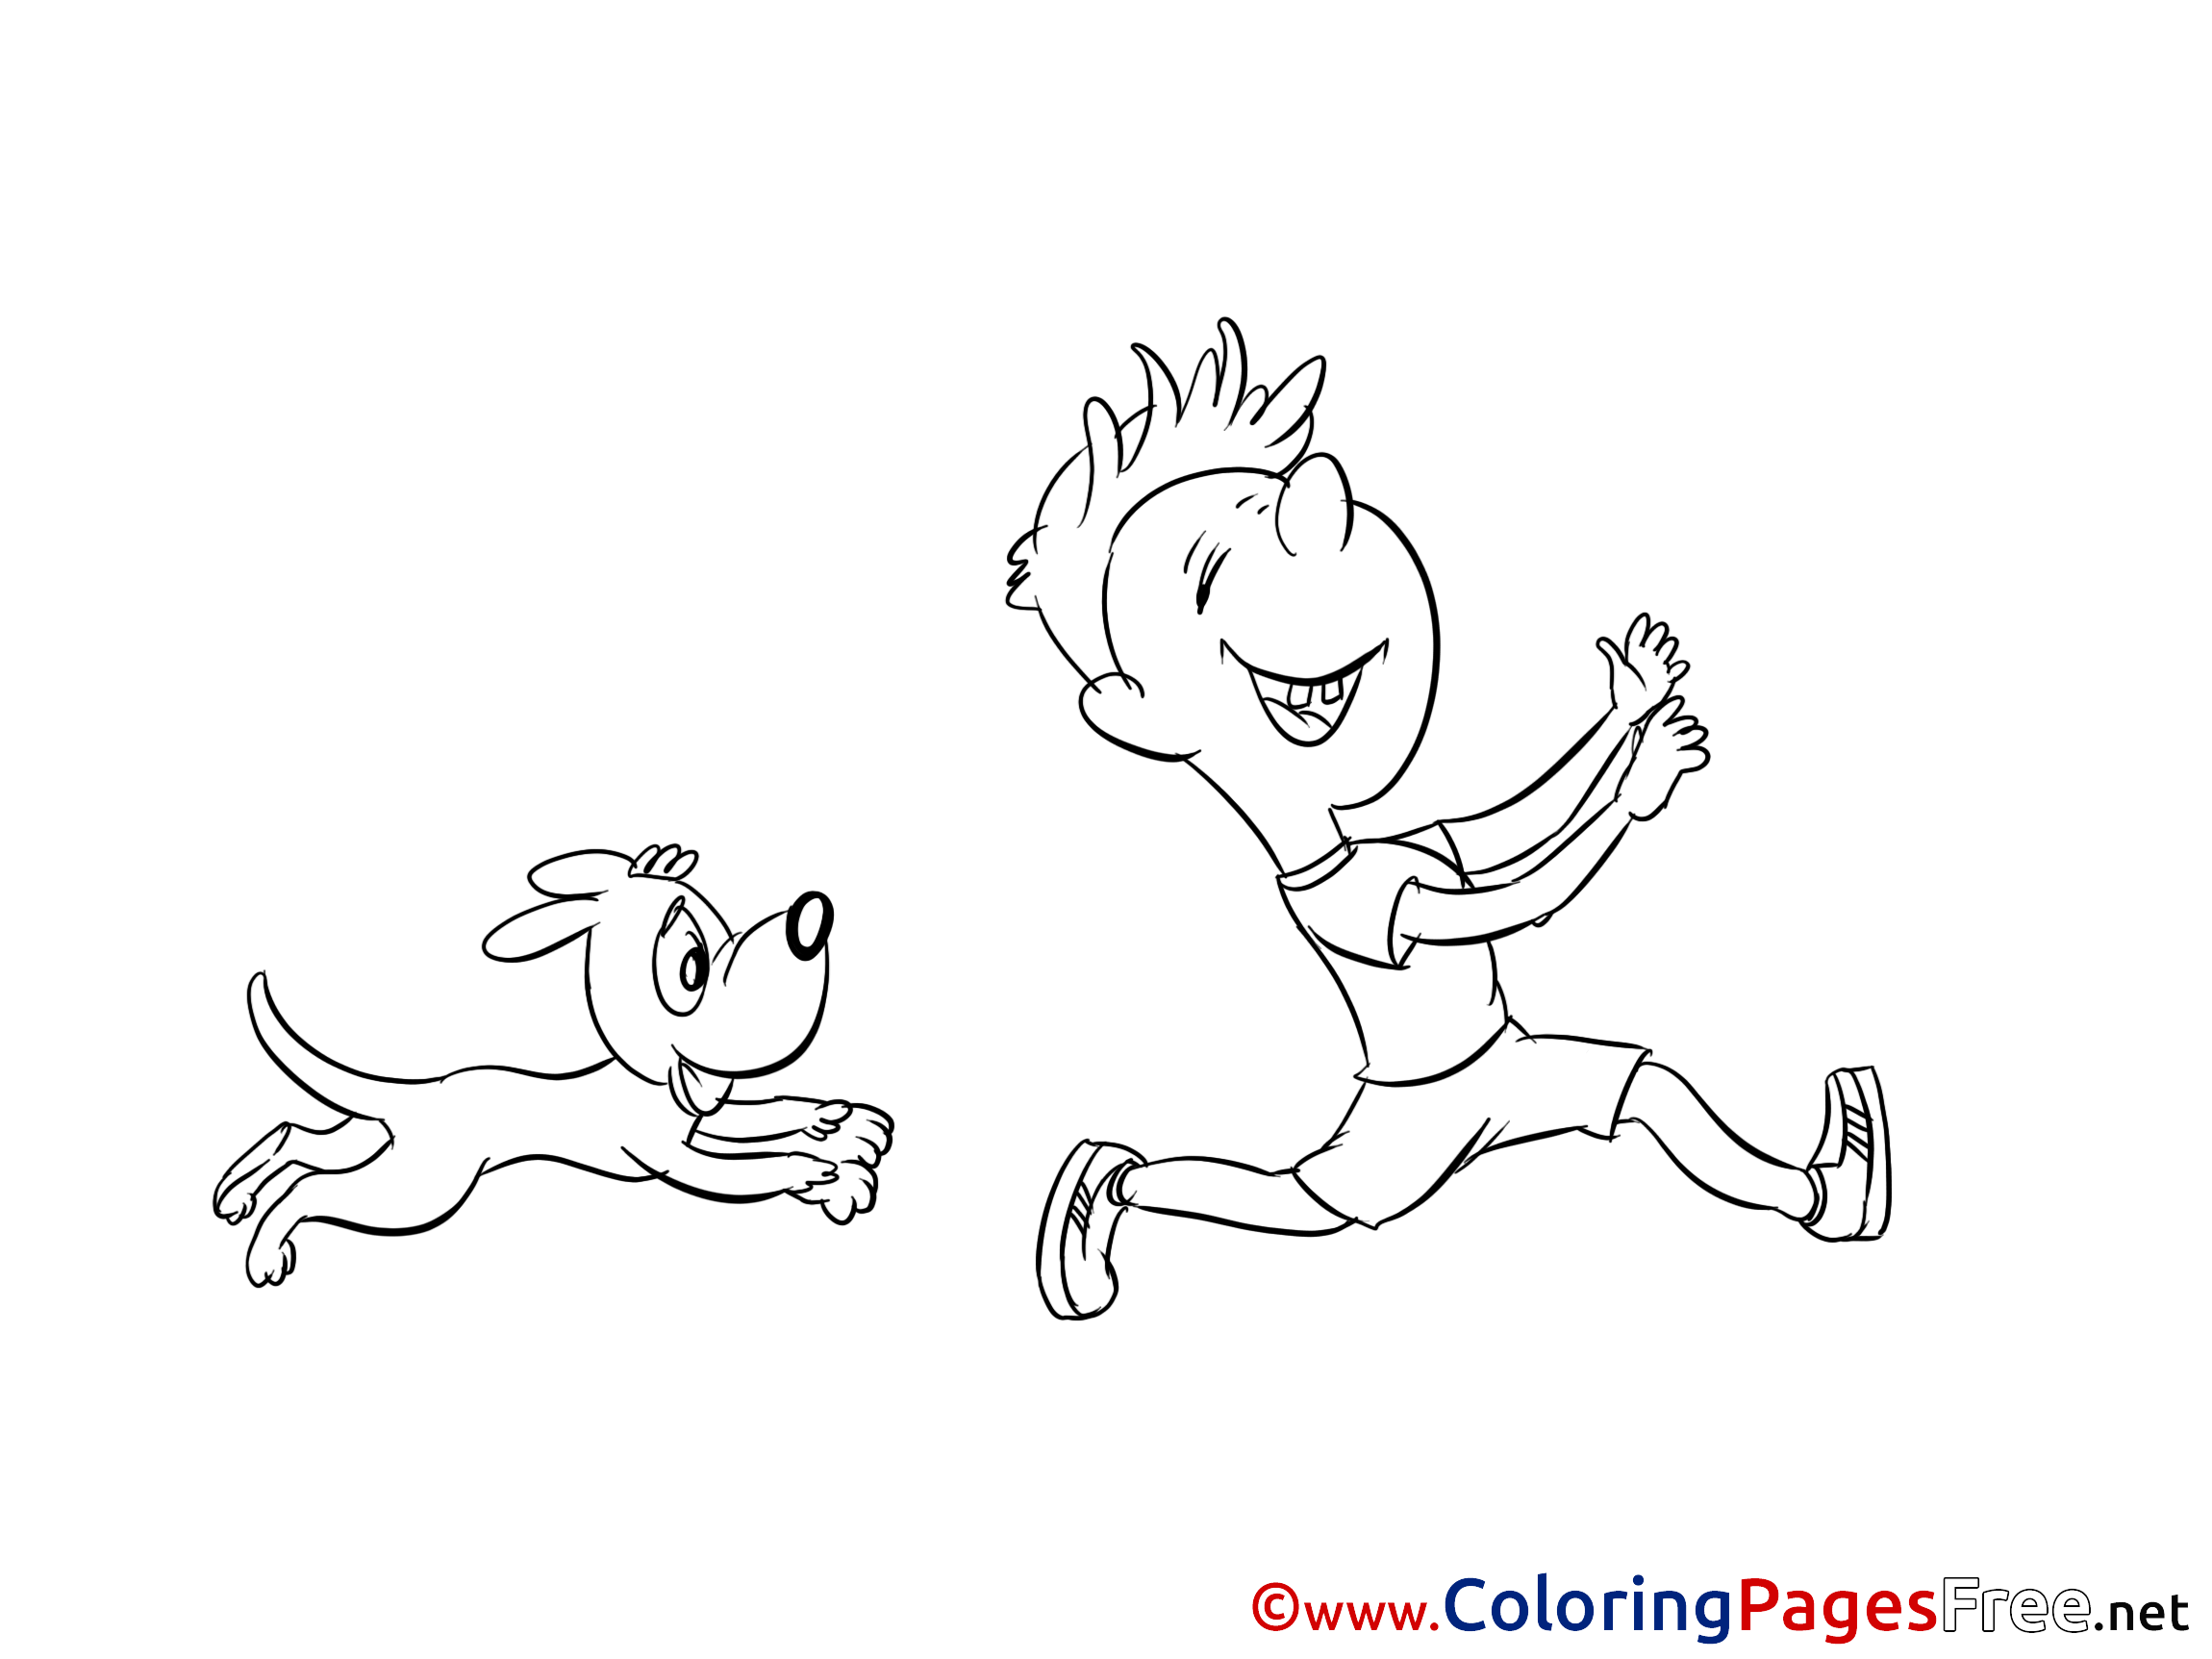 Puppy Printable Coloring Pages For Free